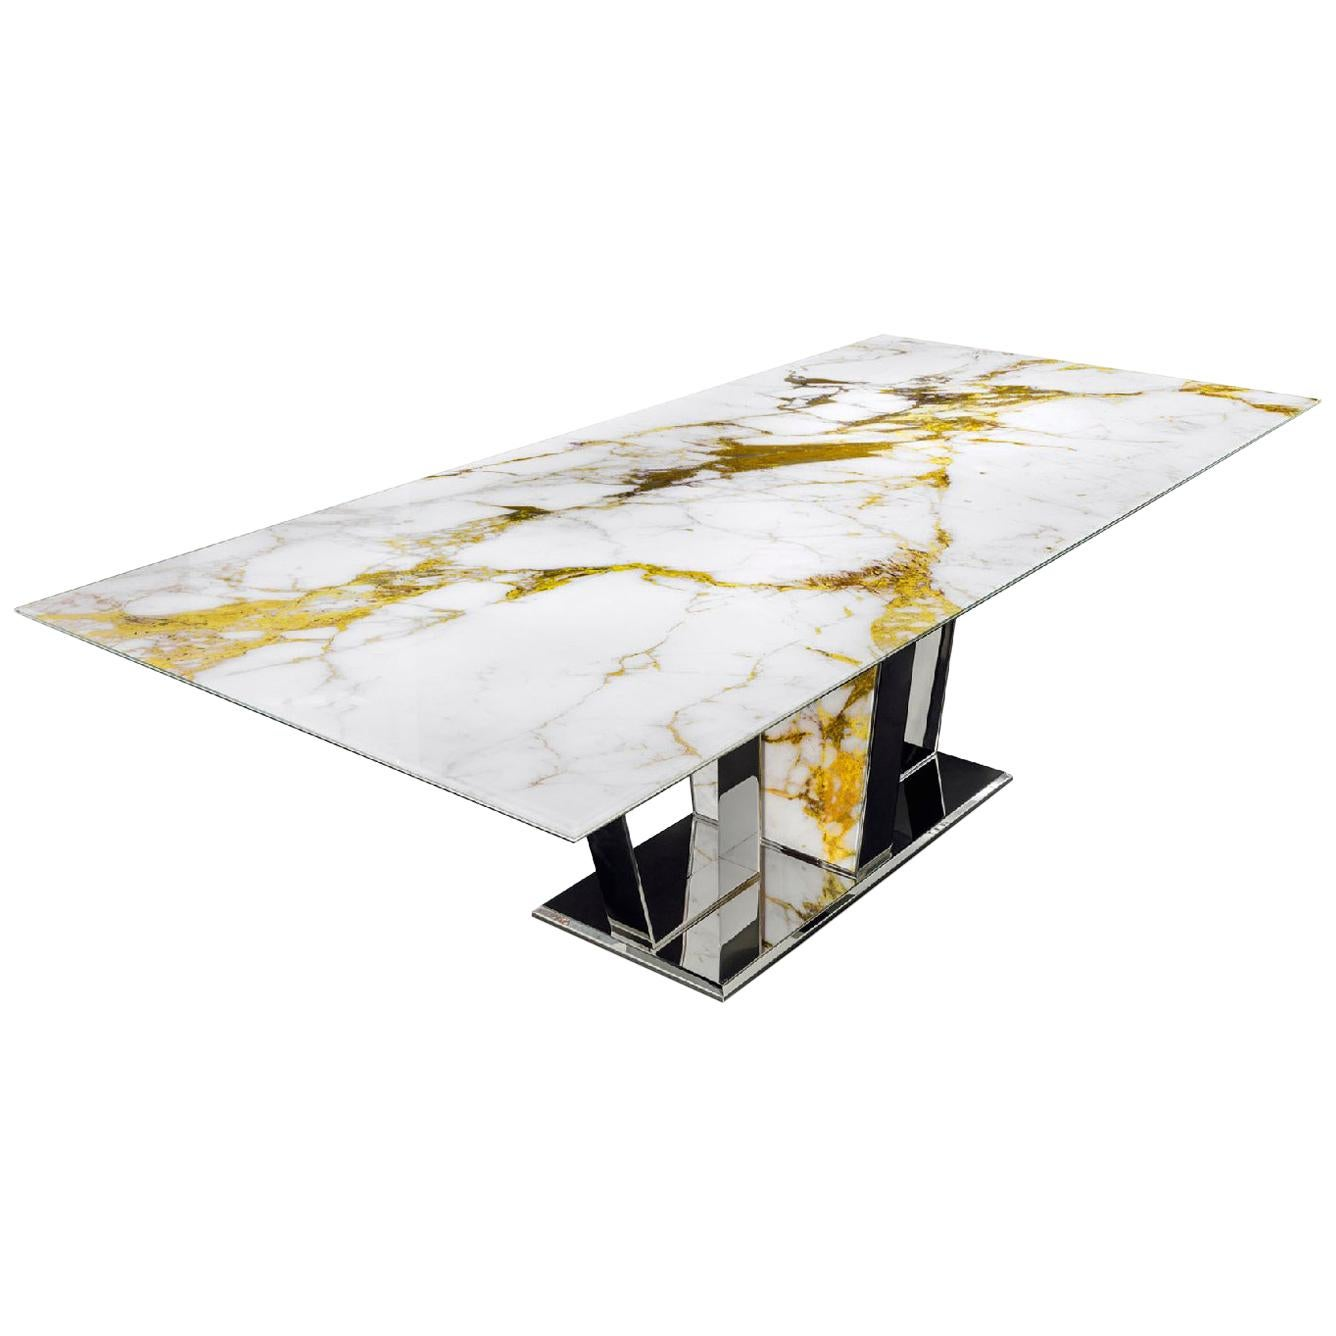 Table Base and Top Frame in Polished Stainless Steel Antique Finish Top Vetrite